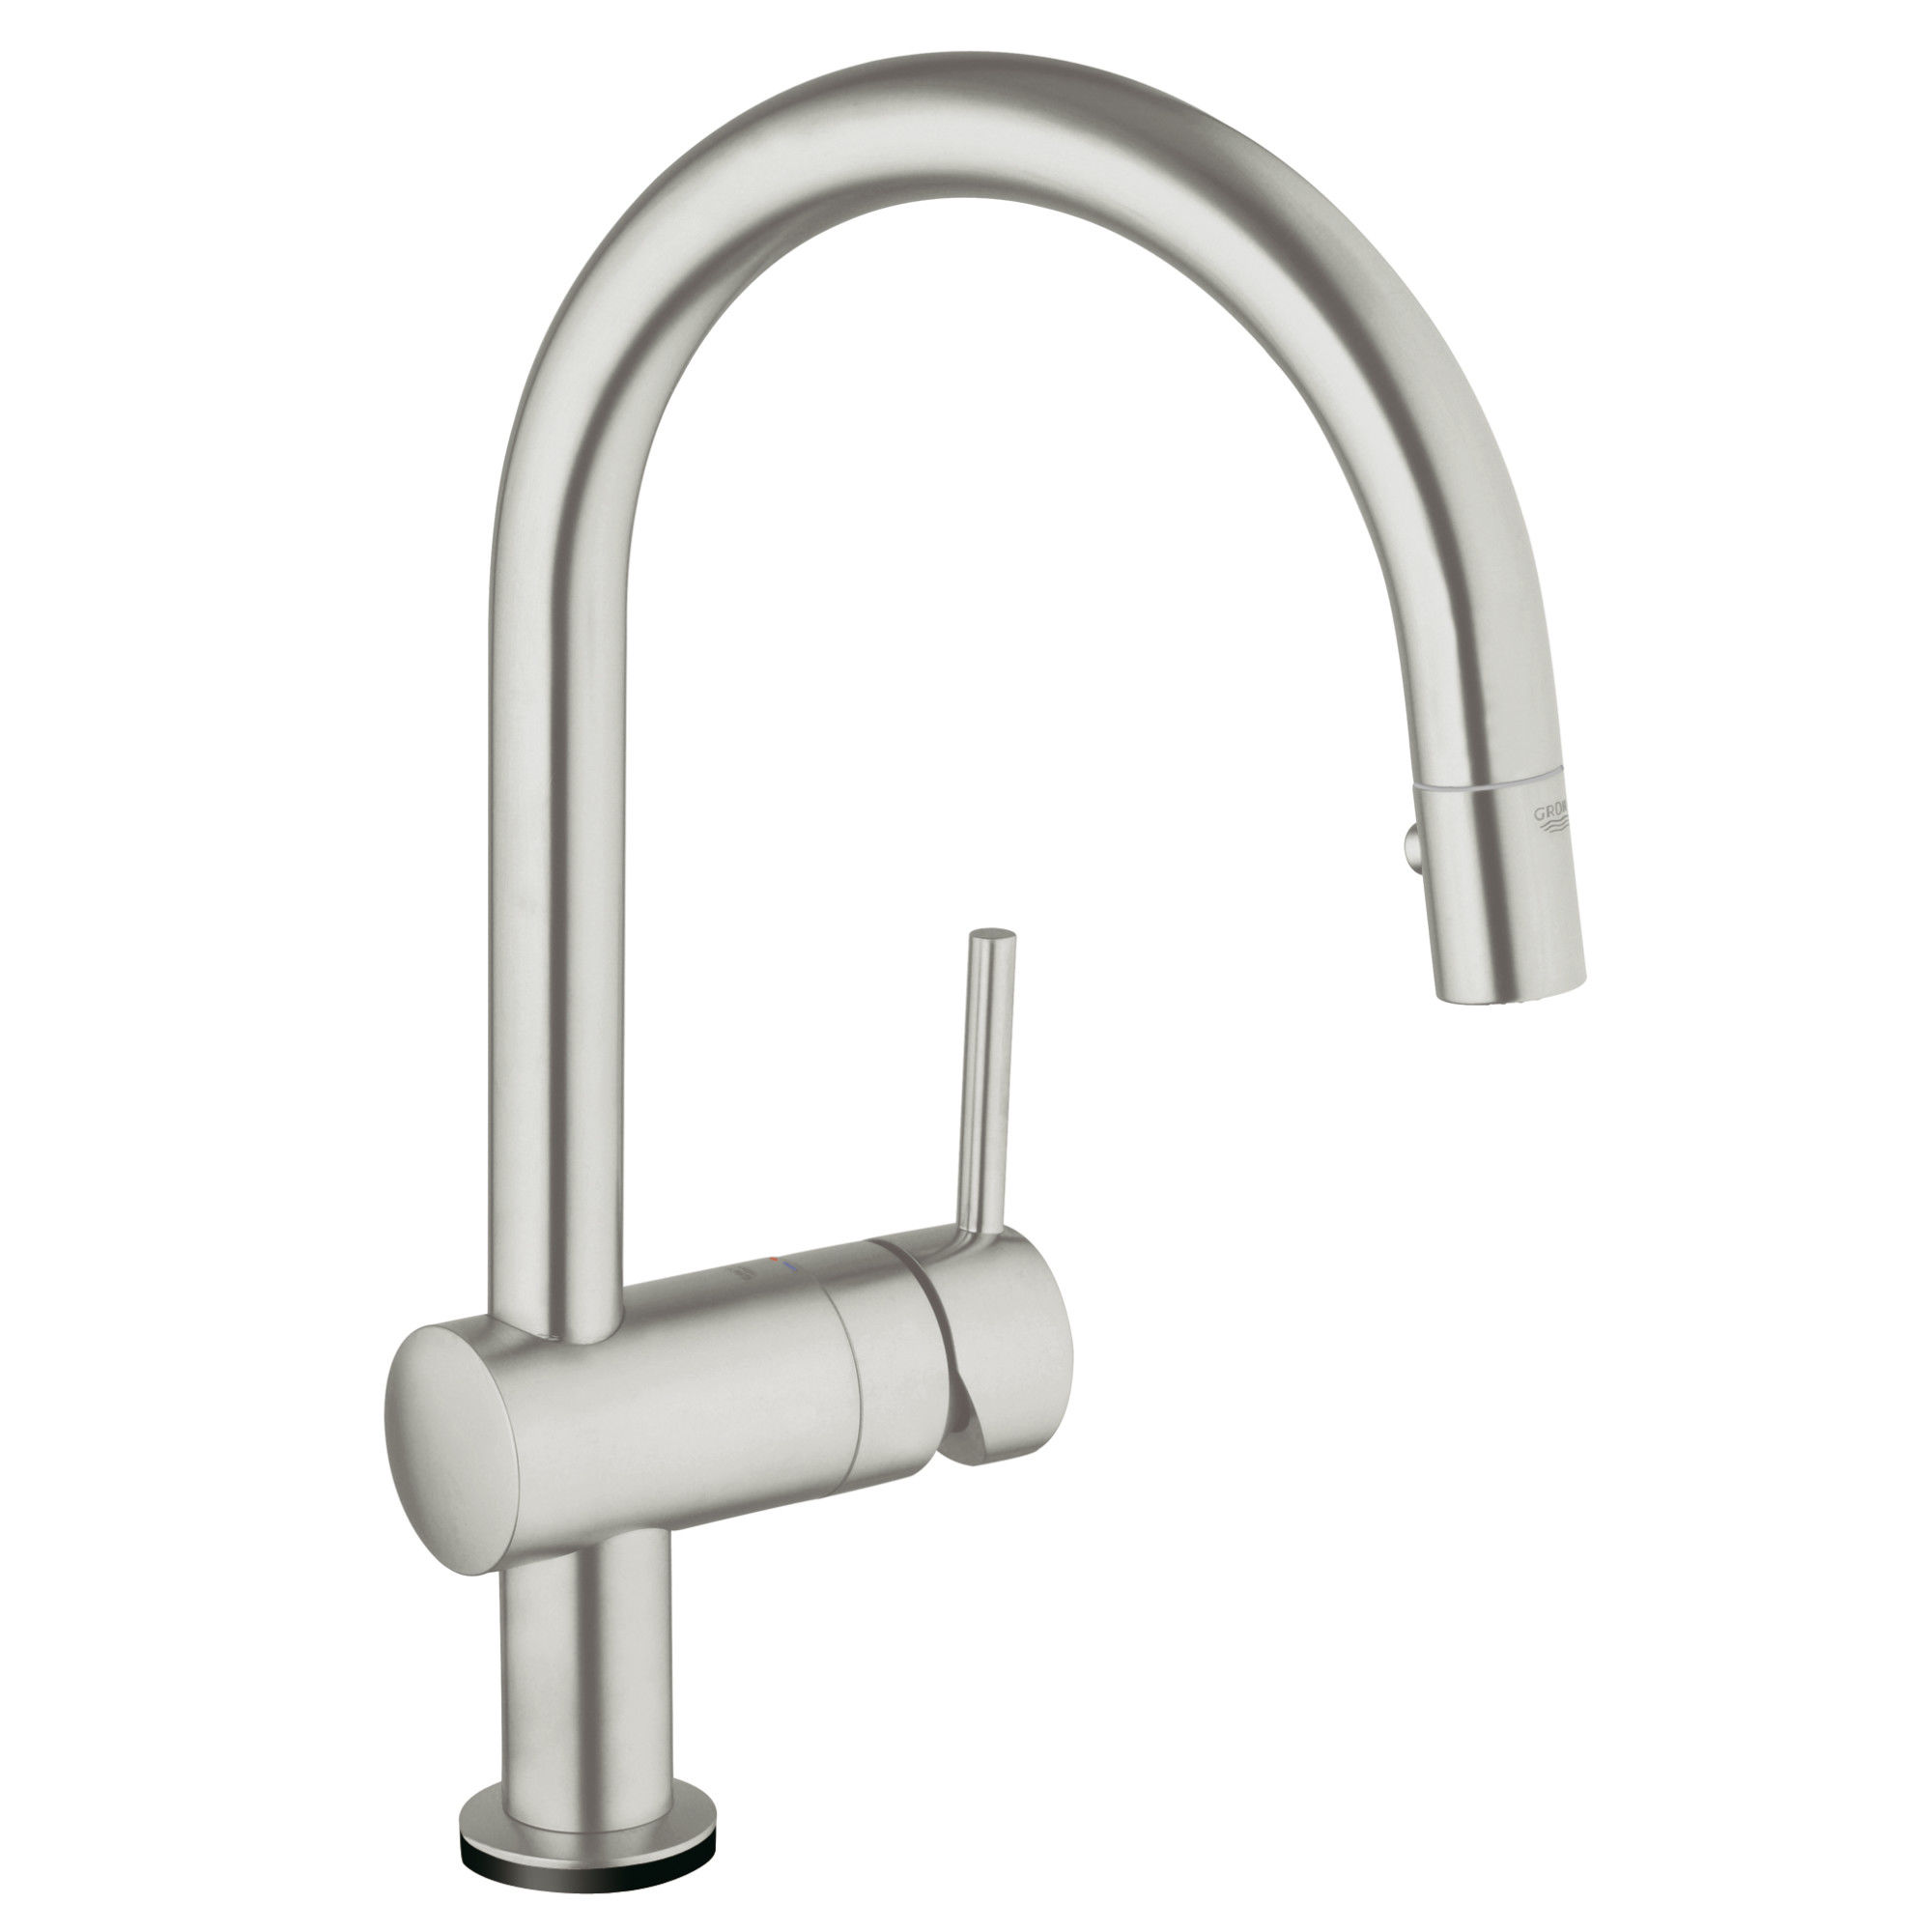 with handle improvement grohe faucet silkmove single concetto home faucets kitchen pdx parts wayfair reviews